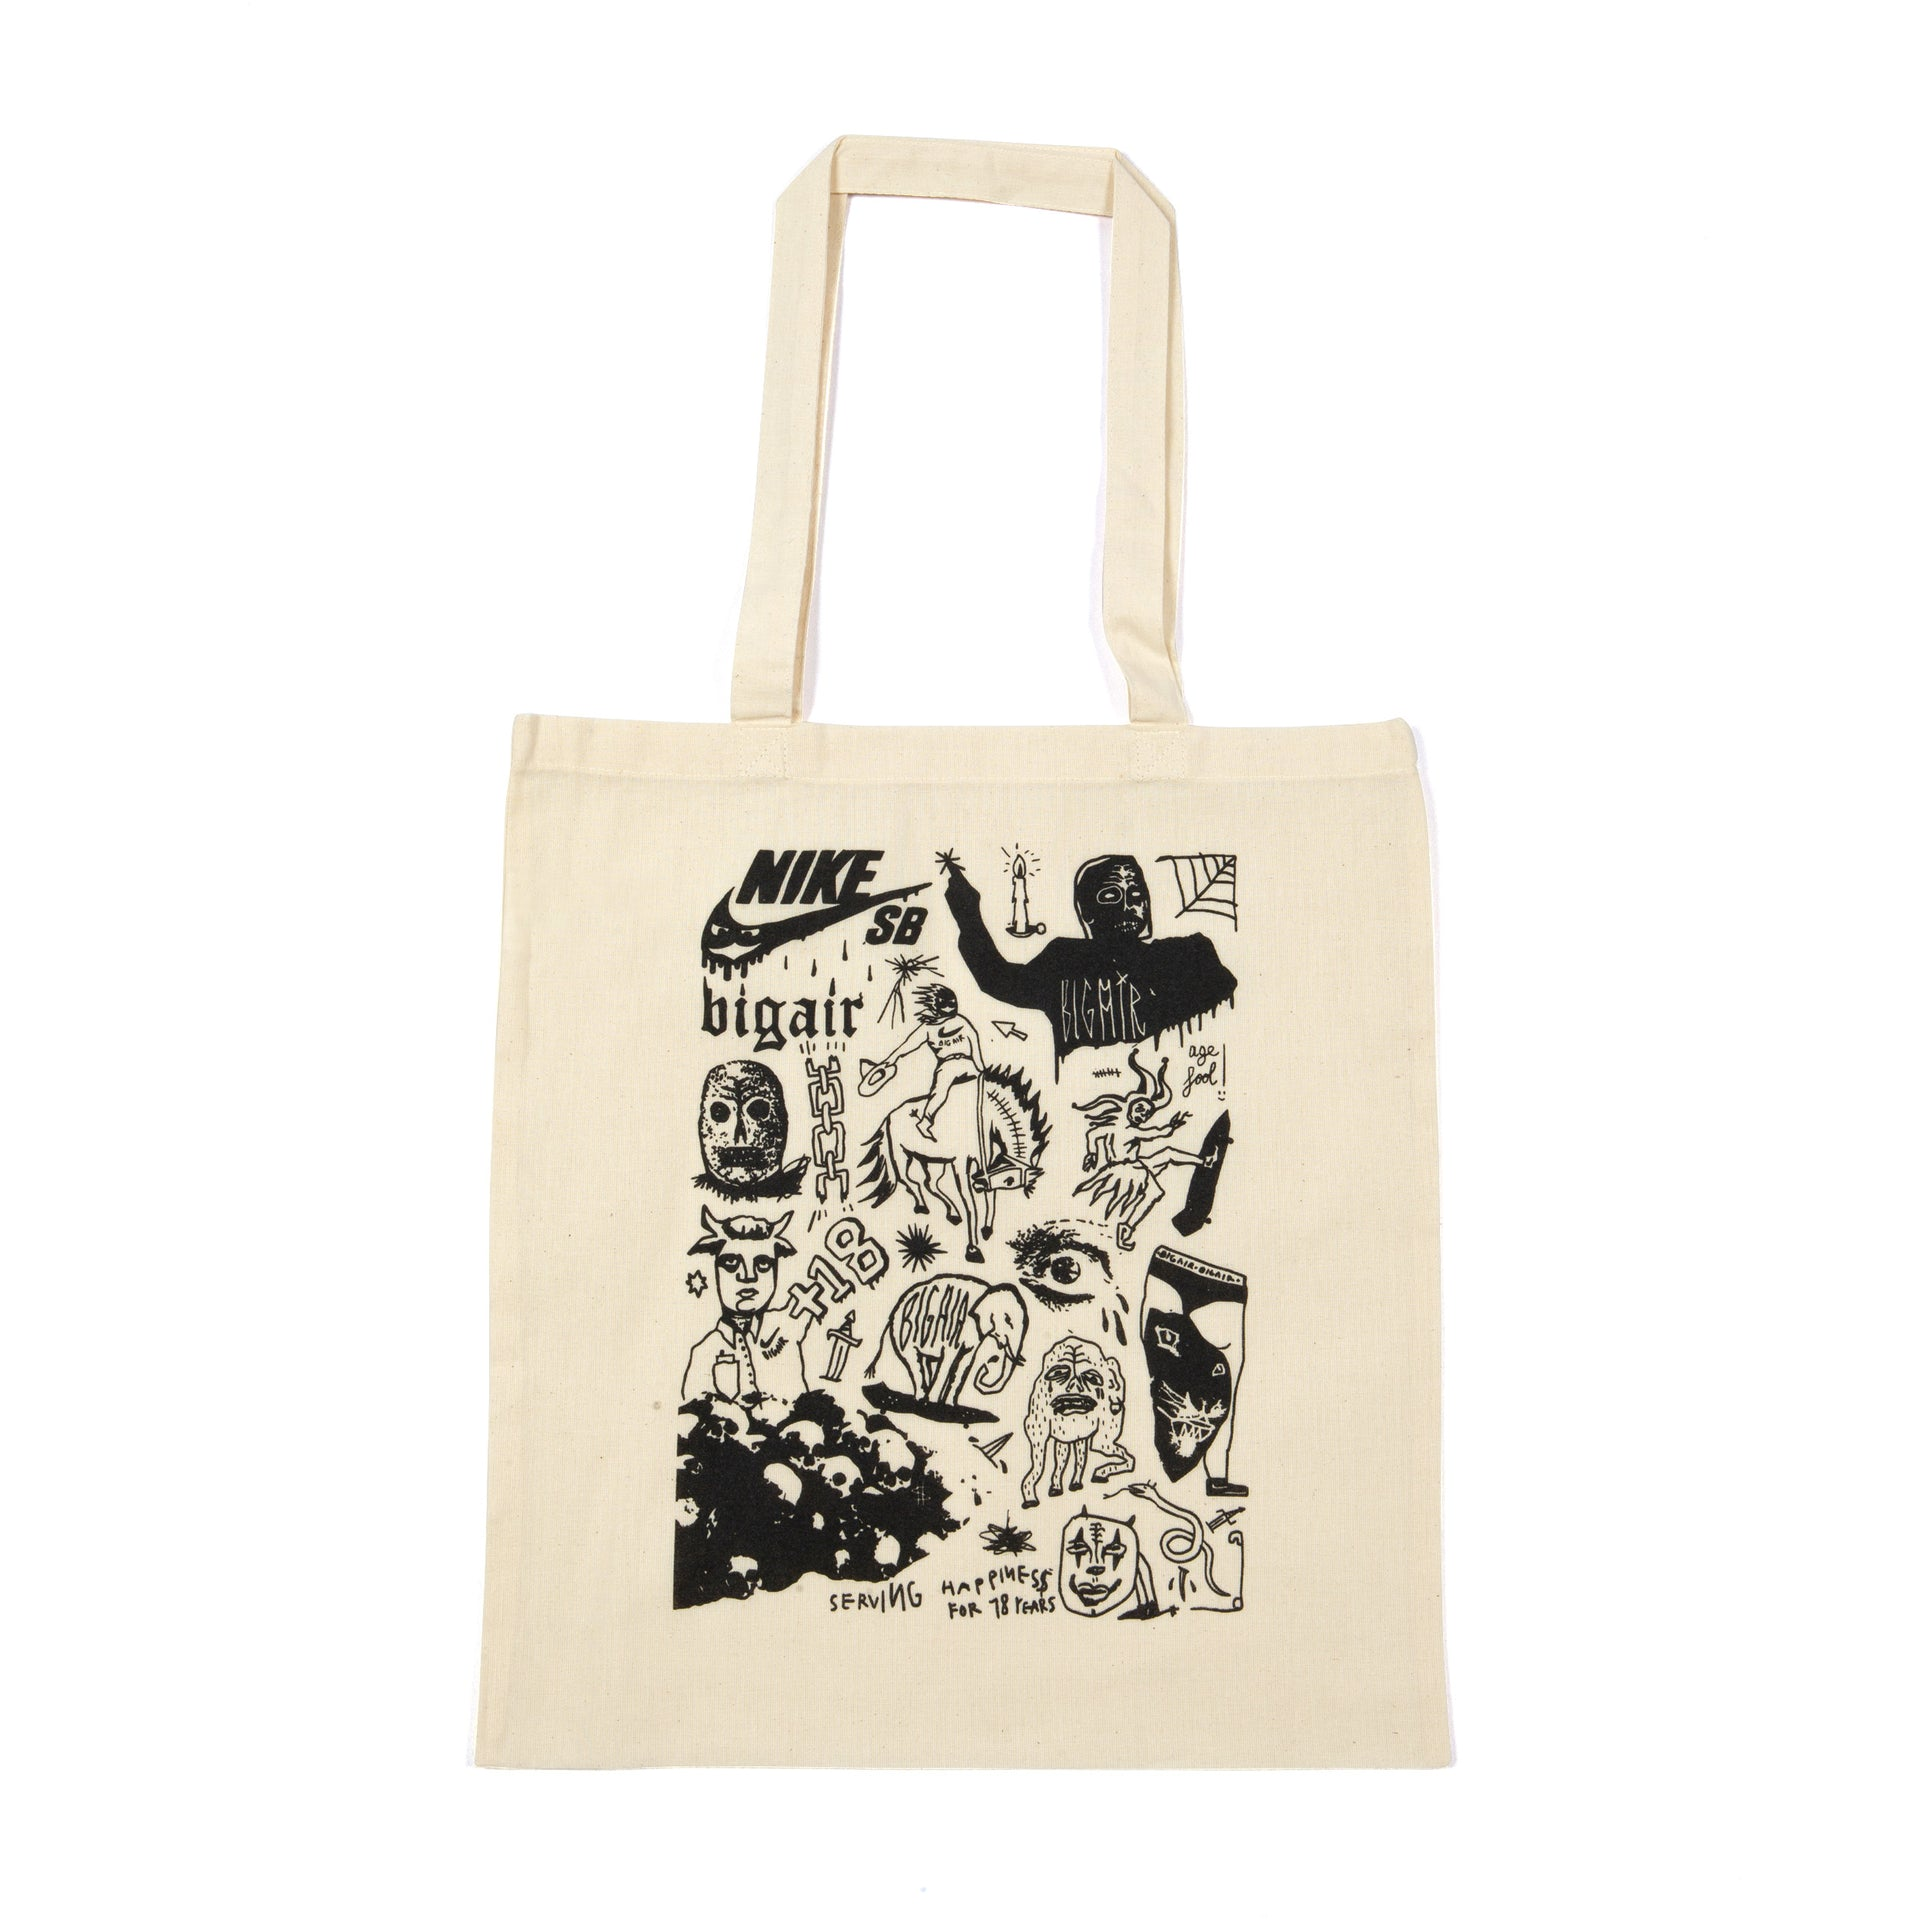 TOTE BAG BIG AIR LAB NATURAL 18 YEARS